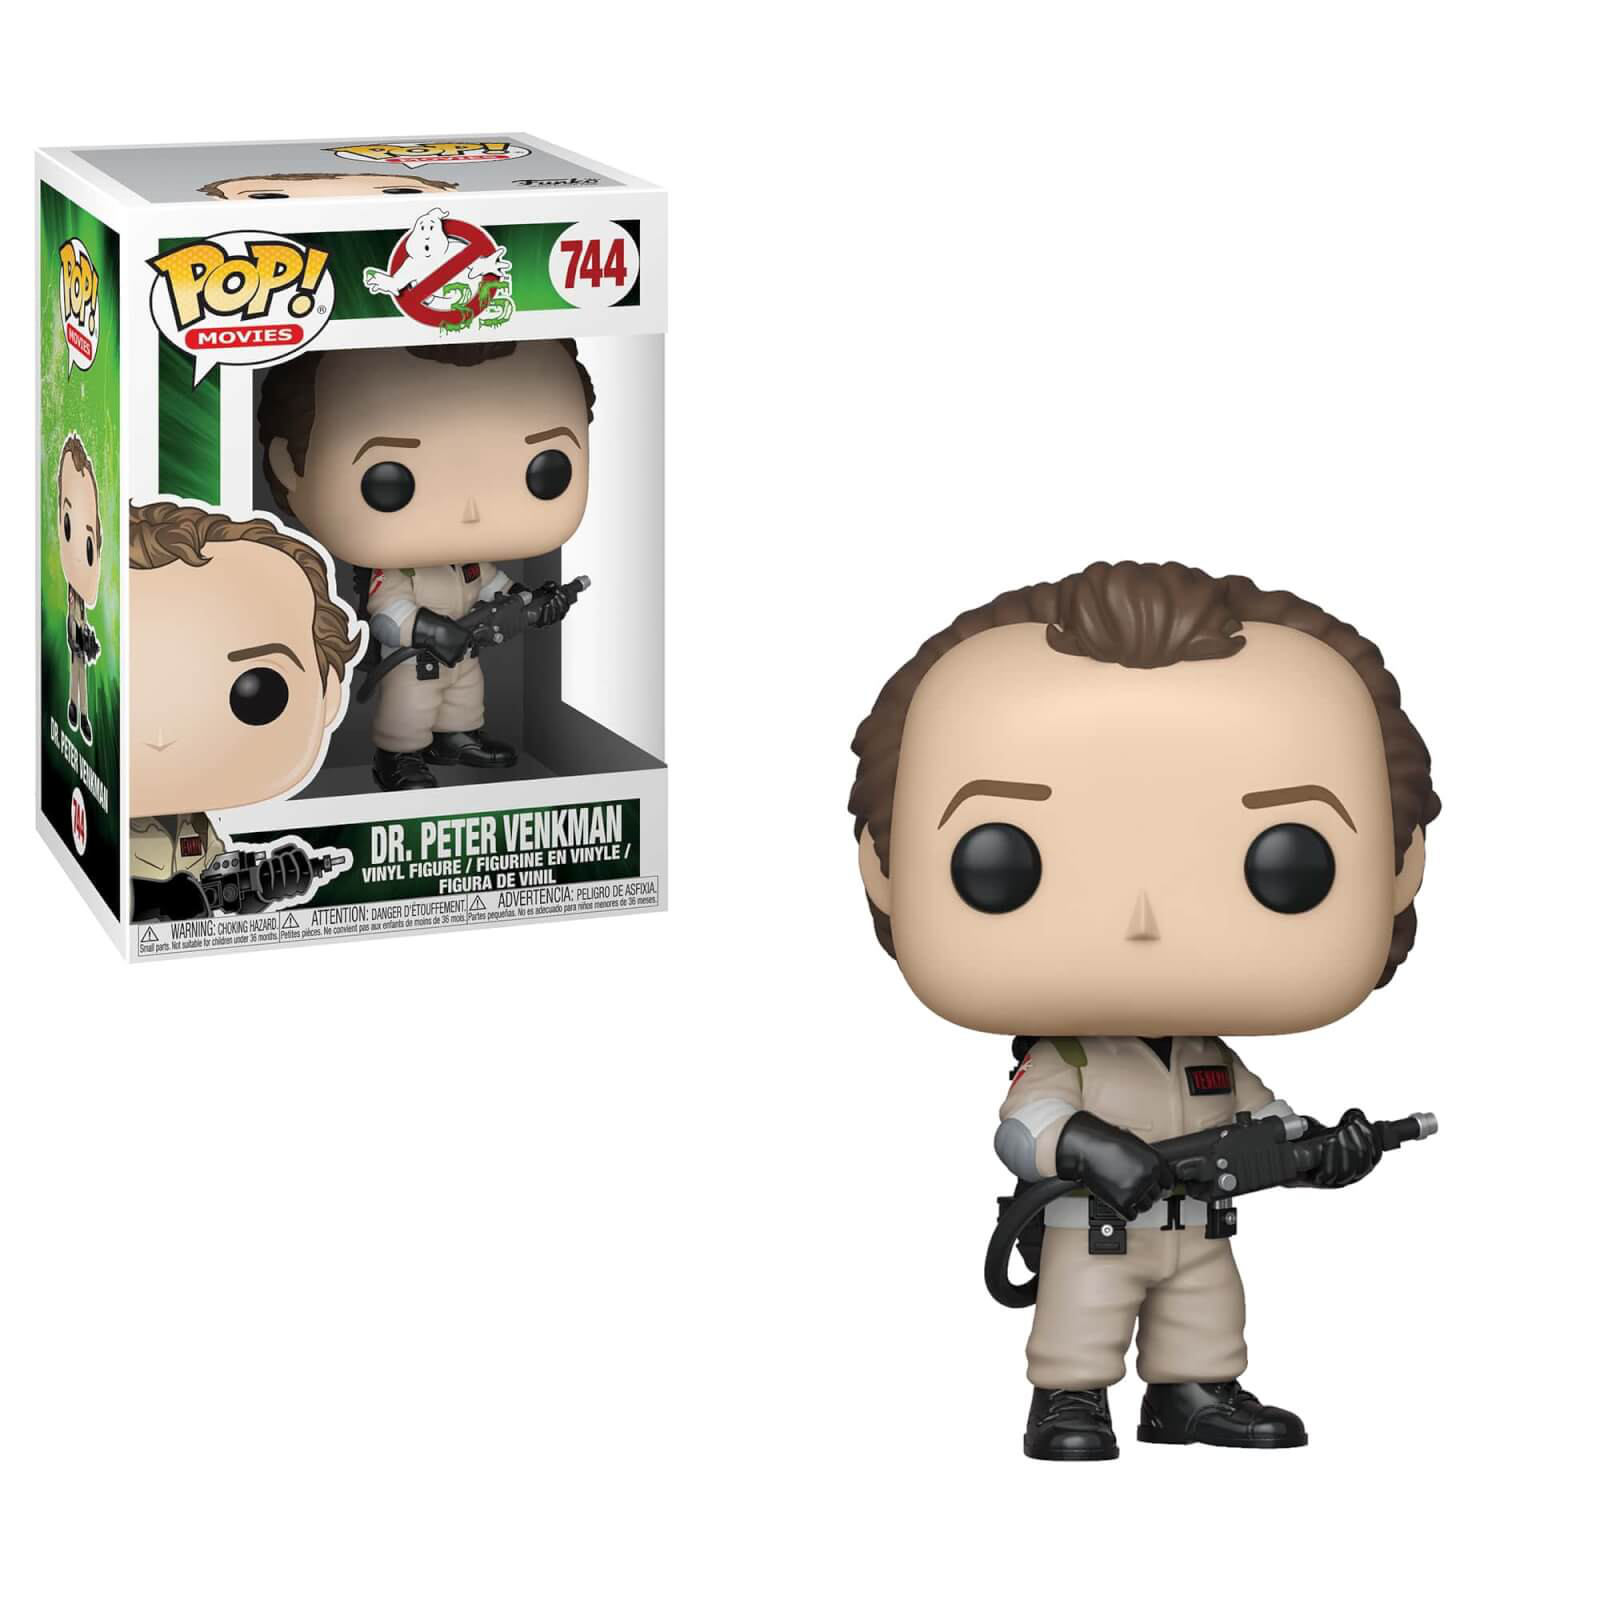 Ghostbusters, Dr Peter Venkman